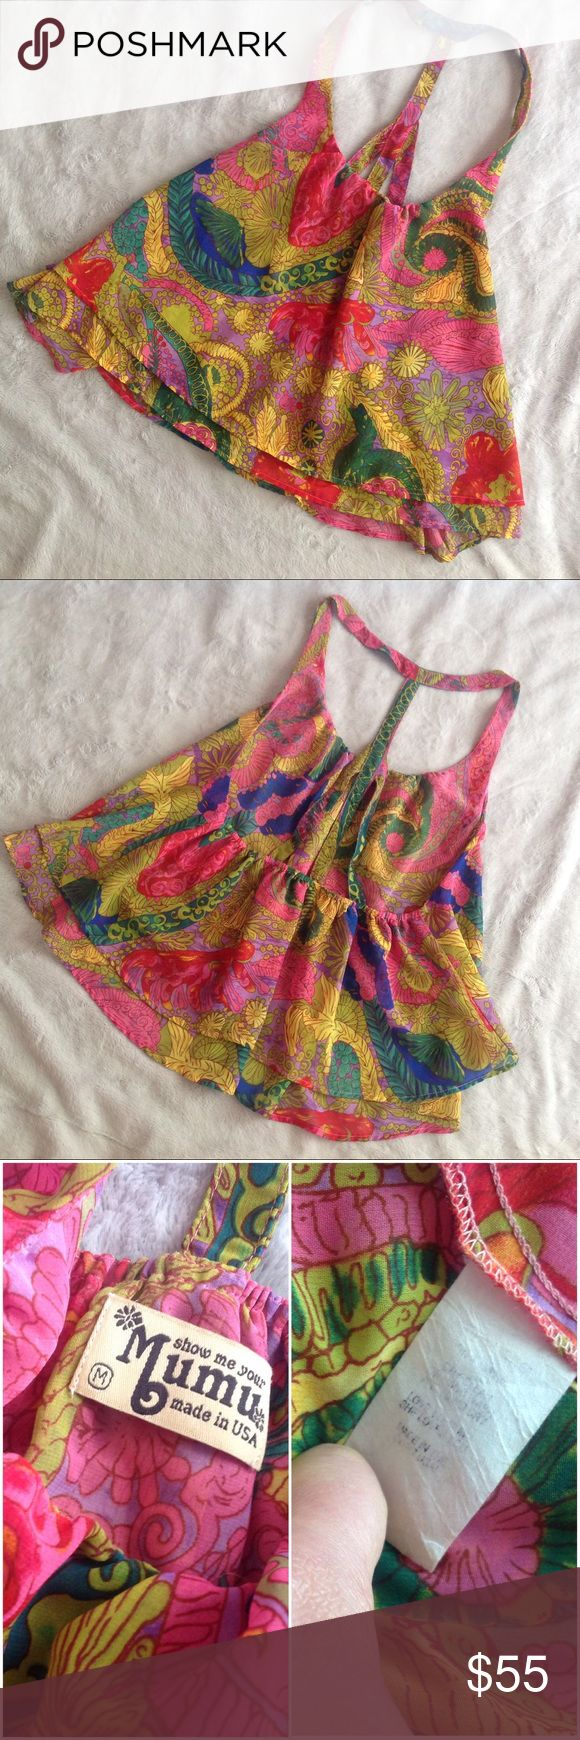 Show Me Your Mumu Nola Paisley Squirrel Strap Top Excellent used condition. Squirrel Strappy Top by Show Me Your Mumu in Nola Paisley, a beautiful boho swirl of pink, green, yellow and blue paisley print. Flowy tank with double layered bottom ruffling. Center strap for an open, exposed back. Care instructions tag is faded, but doesn't impact wear. Size medium, see photos for measurements. // Note: modeled photo of same style top in different print to show fit. Show Me Your MuMu Tops